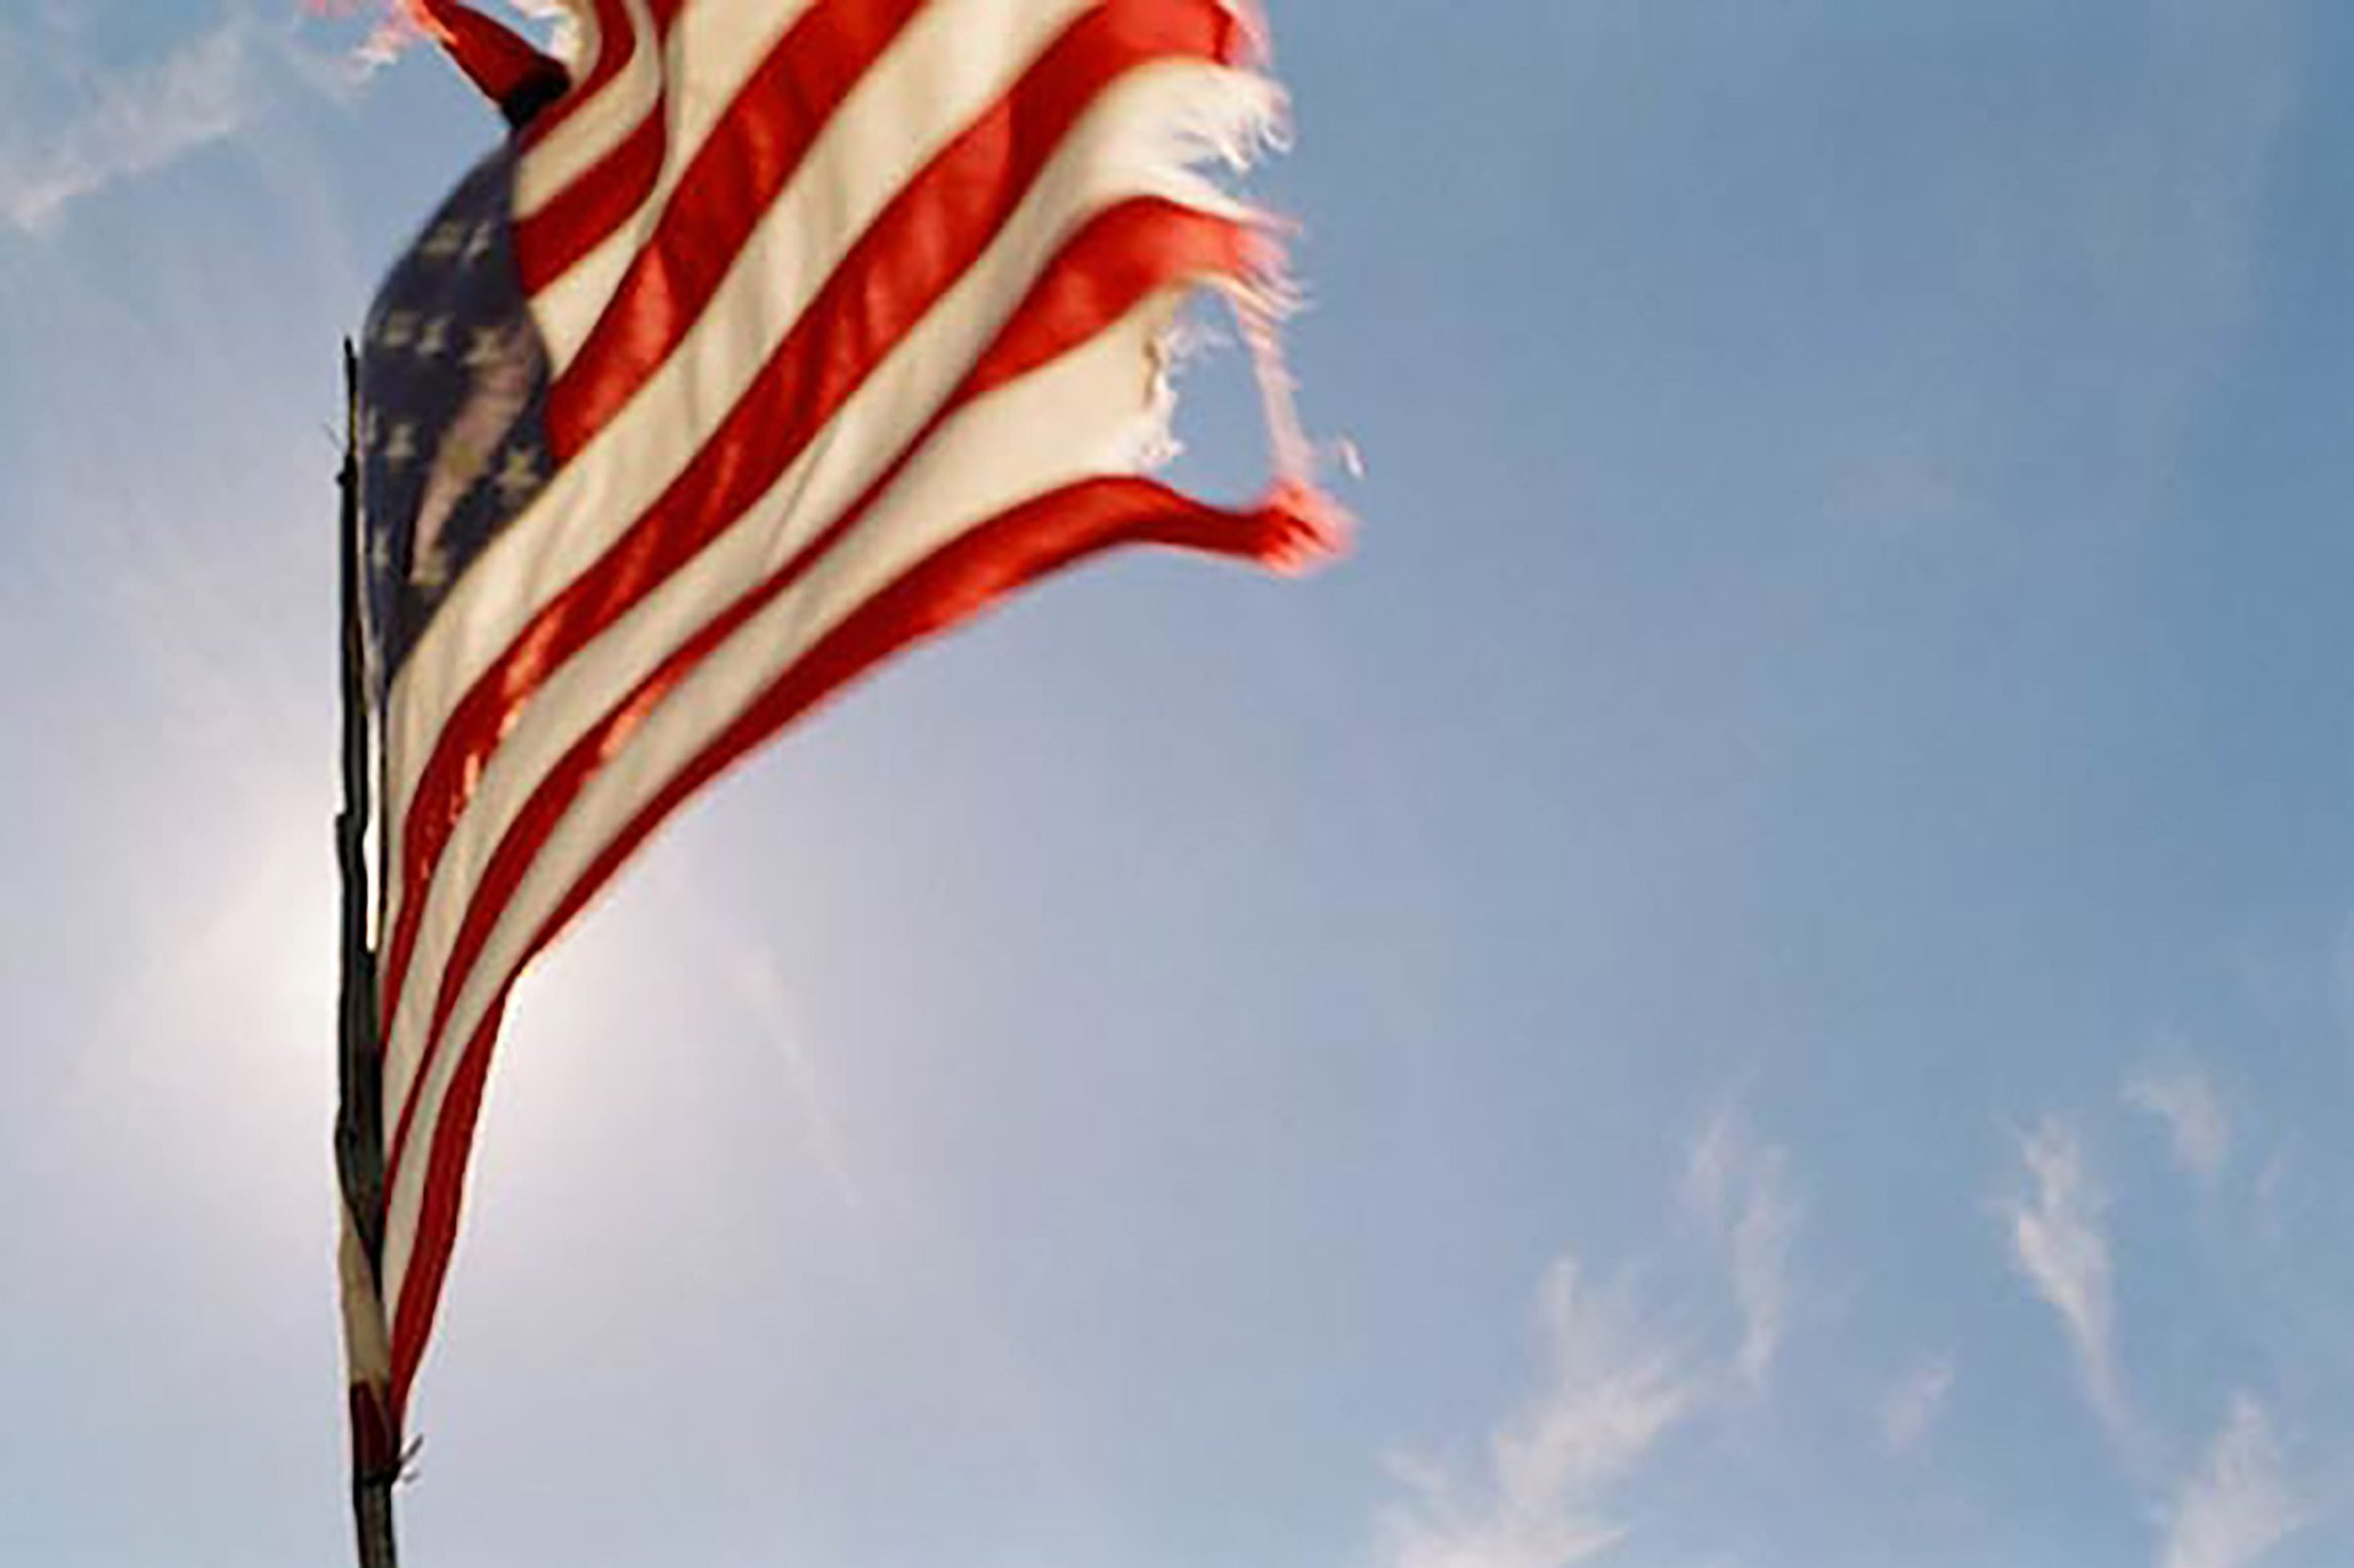 a wind tattered american flag lit from behind by the sun waves vibrantly against the blue of the sky